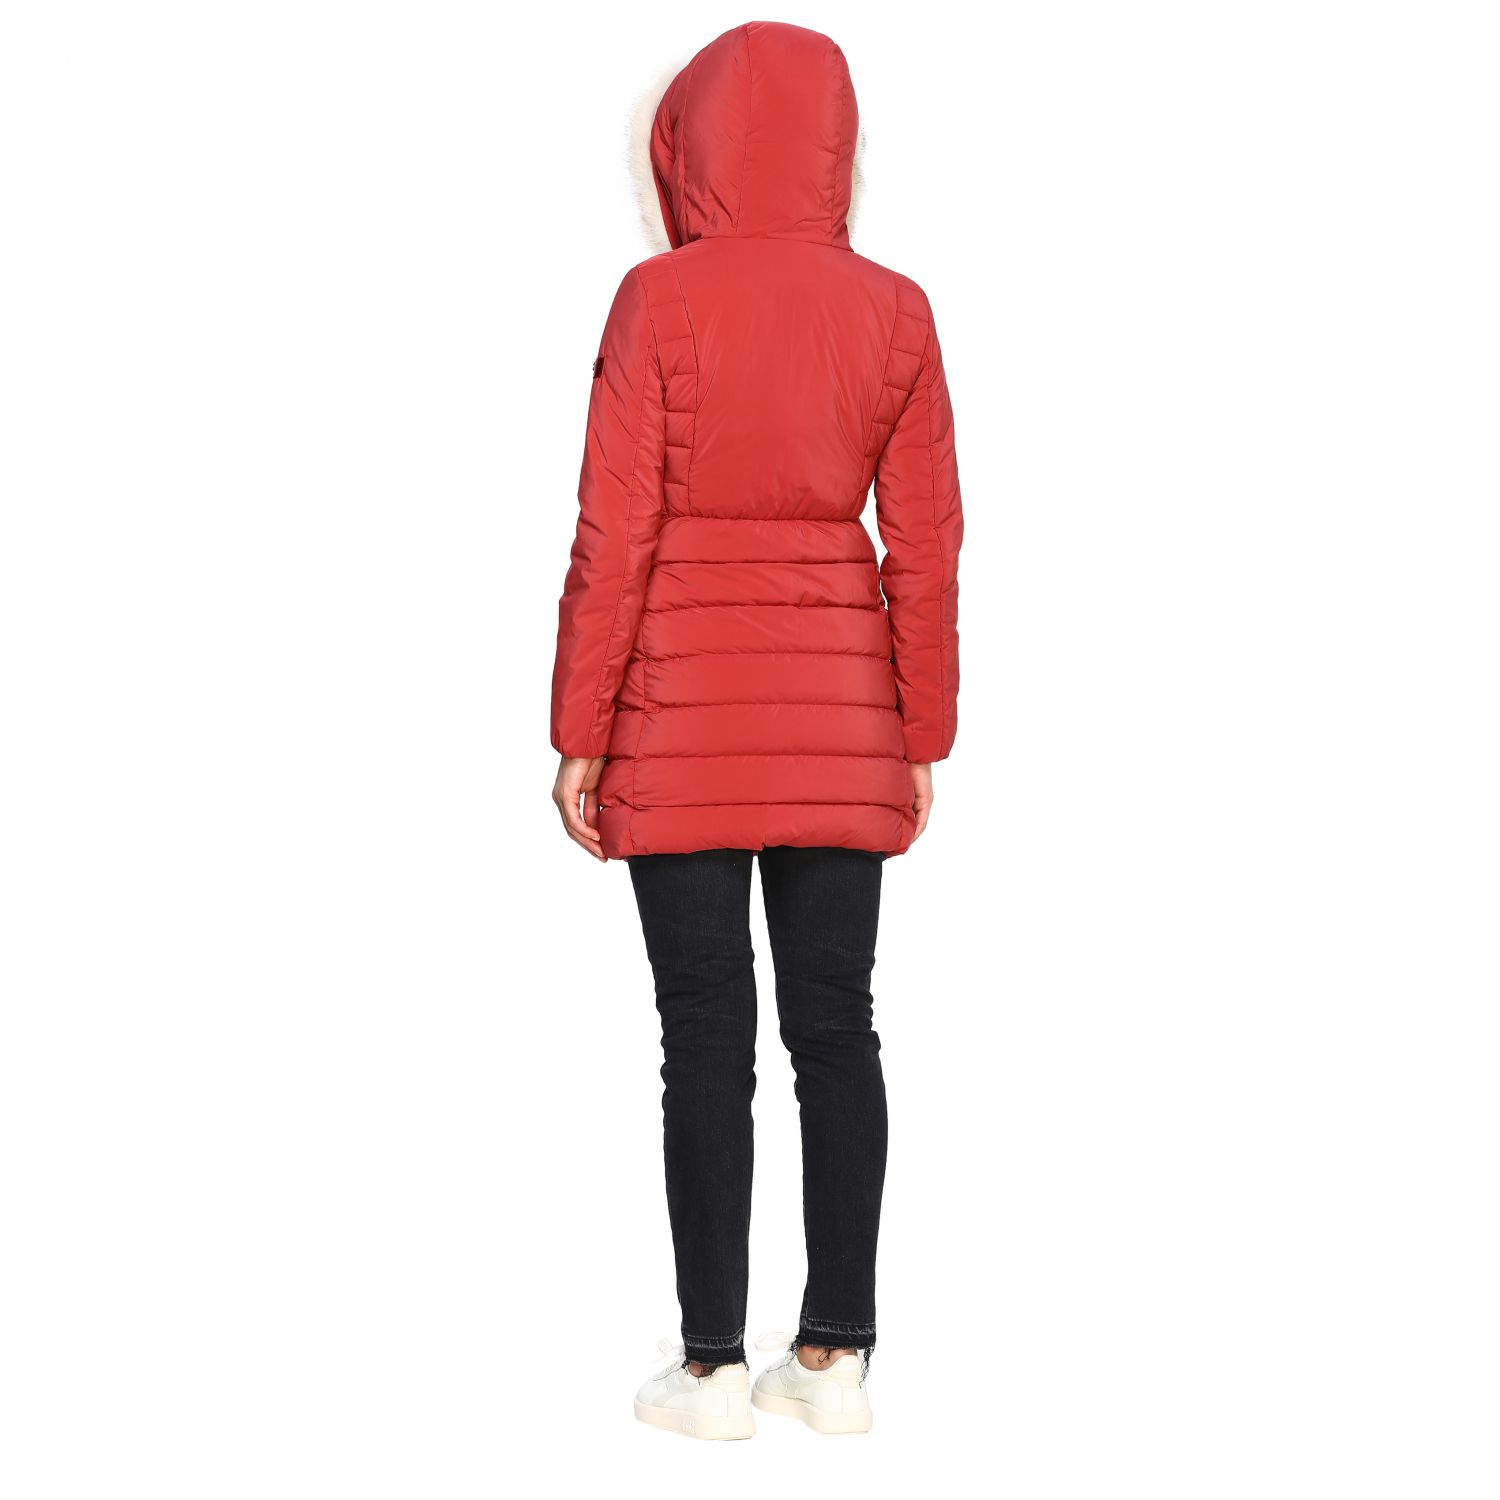 Jacket women Peuterey burgundy 3